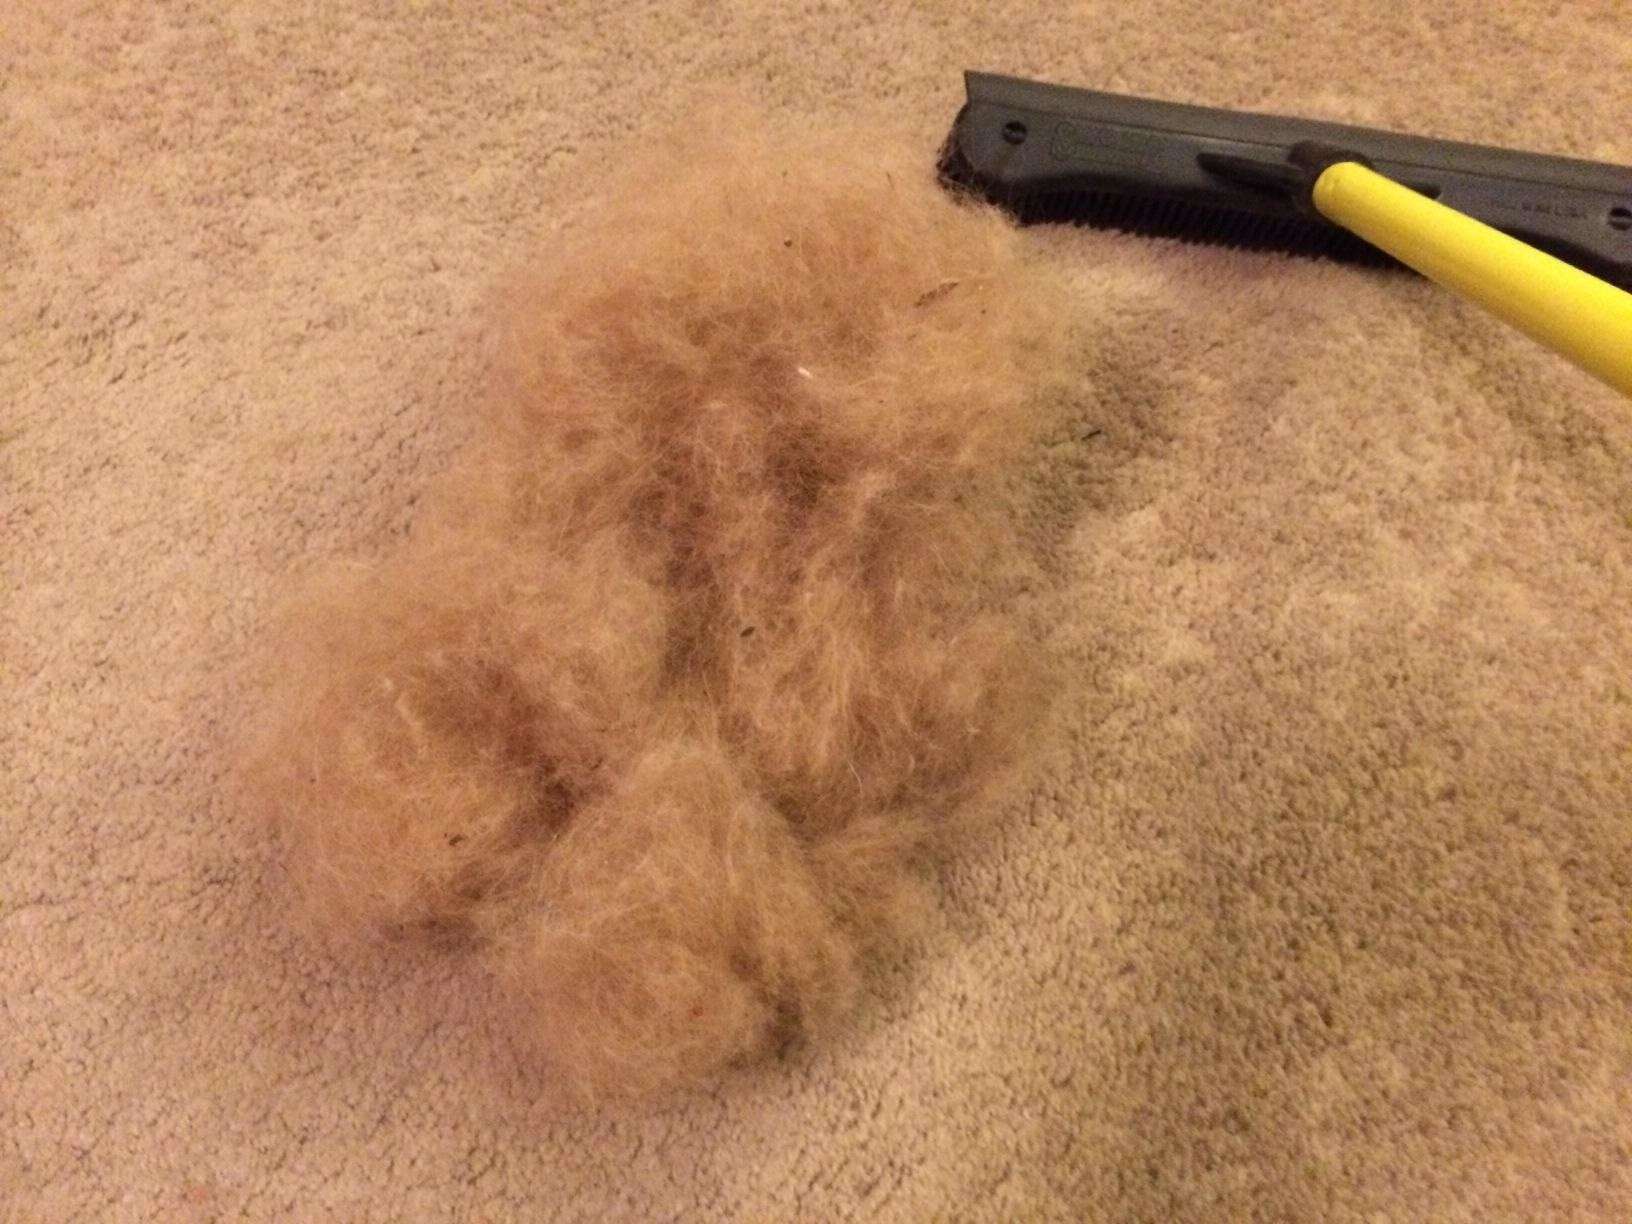 Reviewer's photo of the pet hair stuck in their carpet after using the black and white FURemover